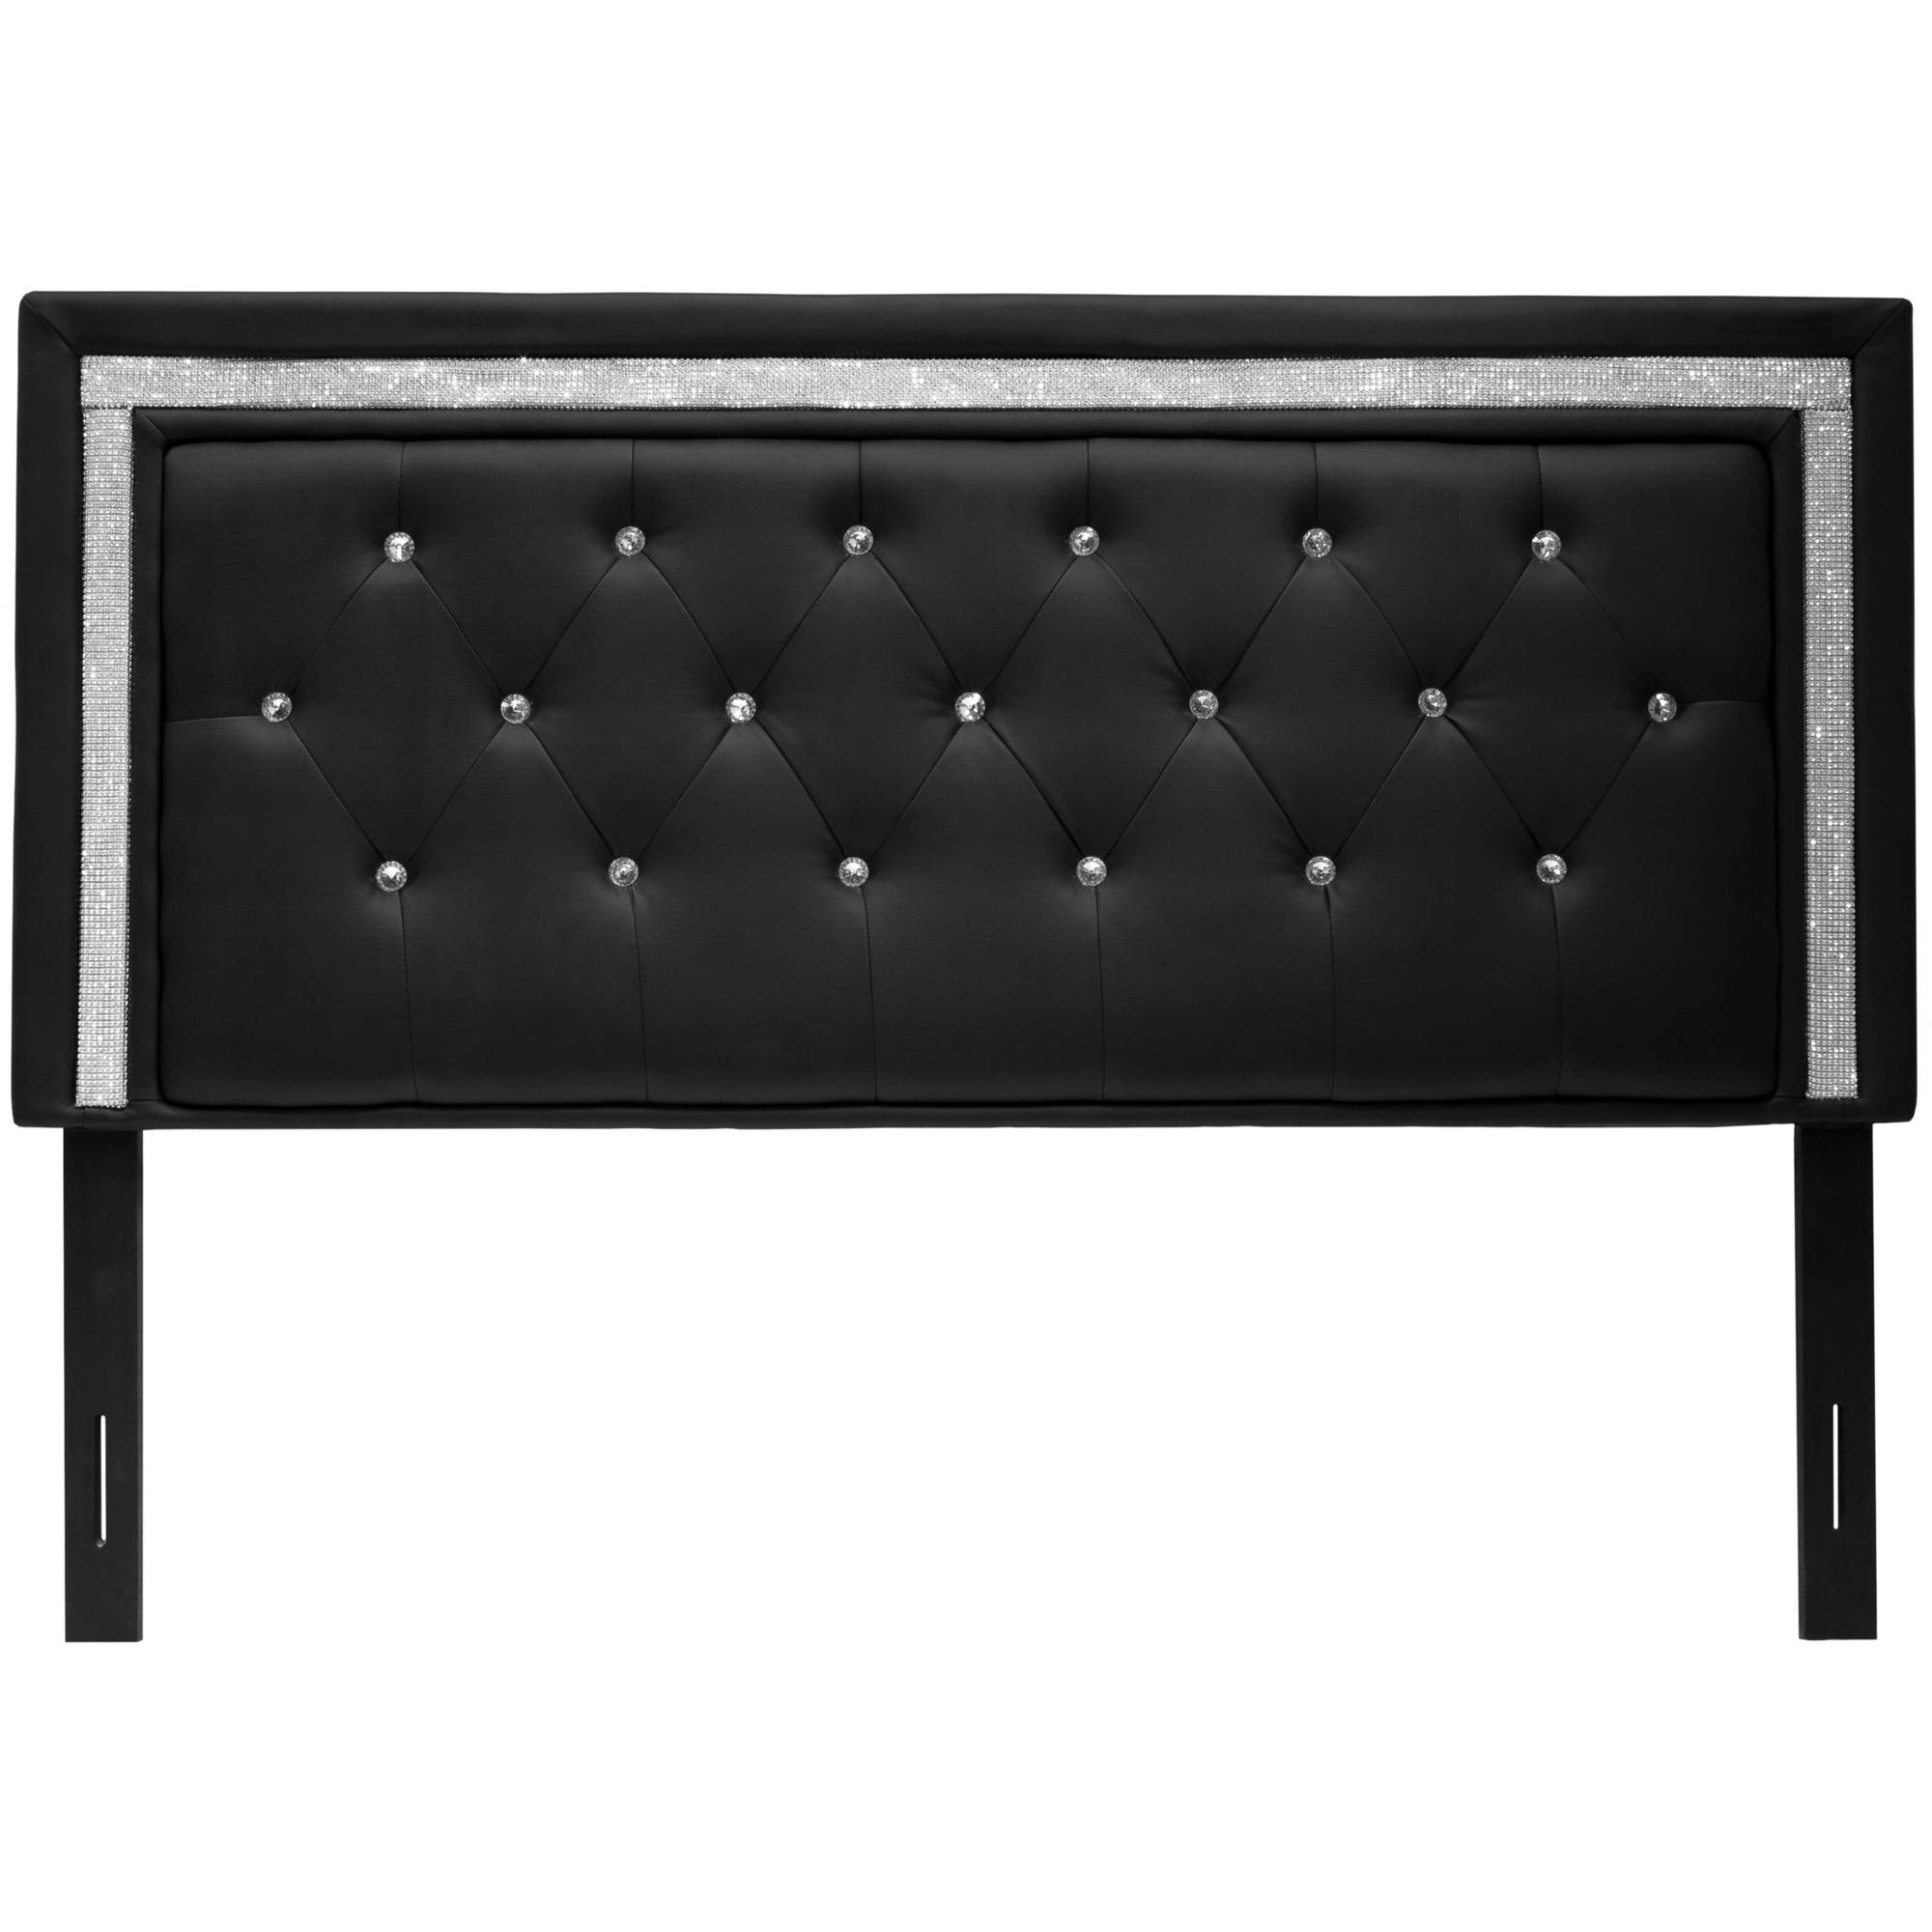 Best Master Furniture Tufted Vinyl Upholstered Headboard, Black or White by Best Master Furniture